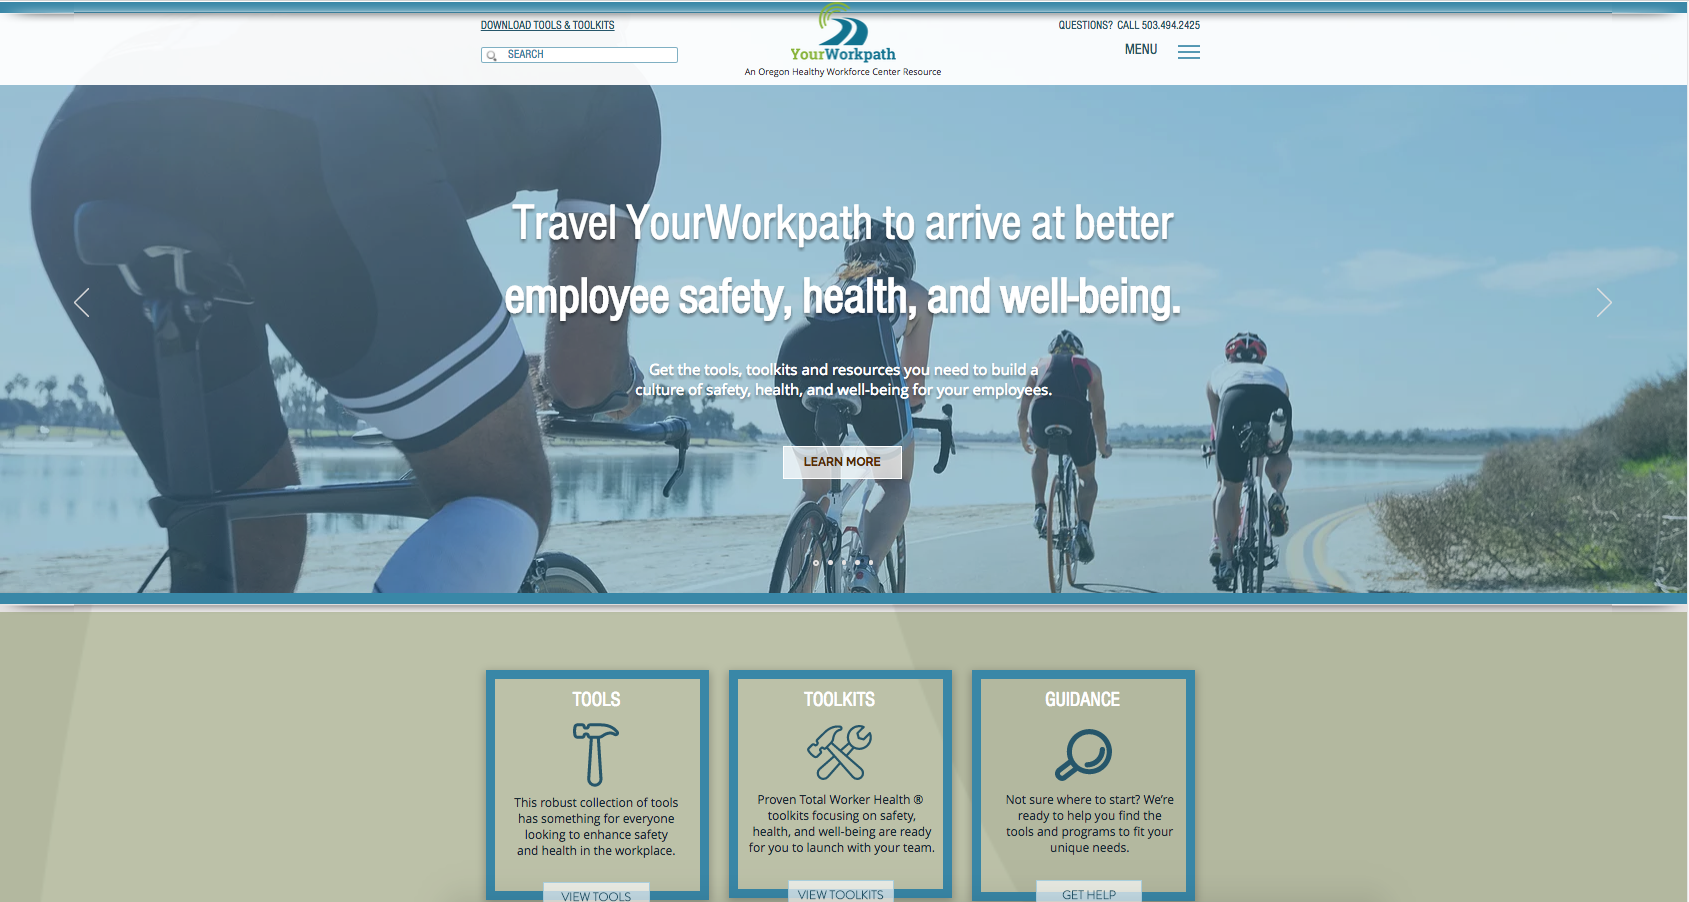 YourWorkpath.com, an Oregon Health Workforce Center resource on workplace safety, health and well-being tools and toolkits